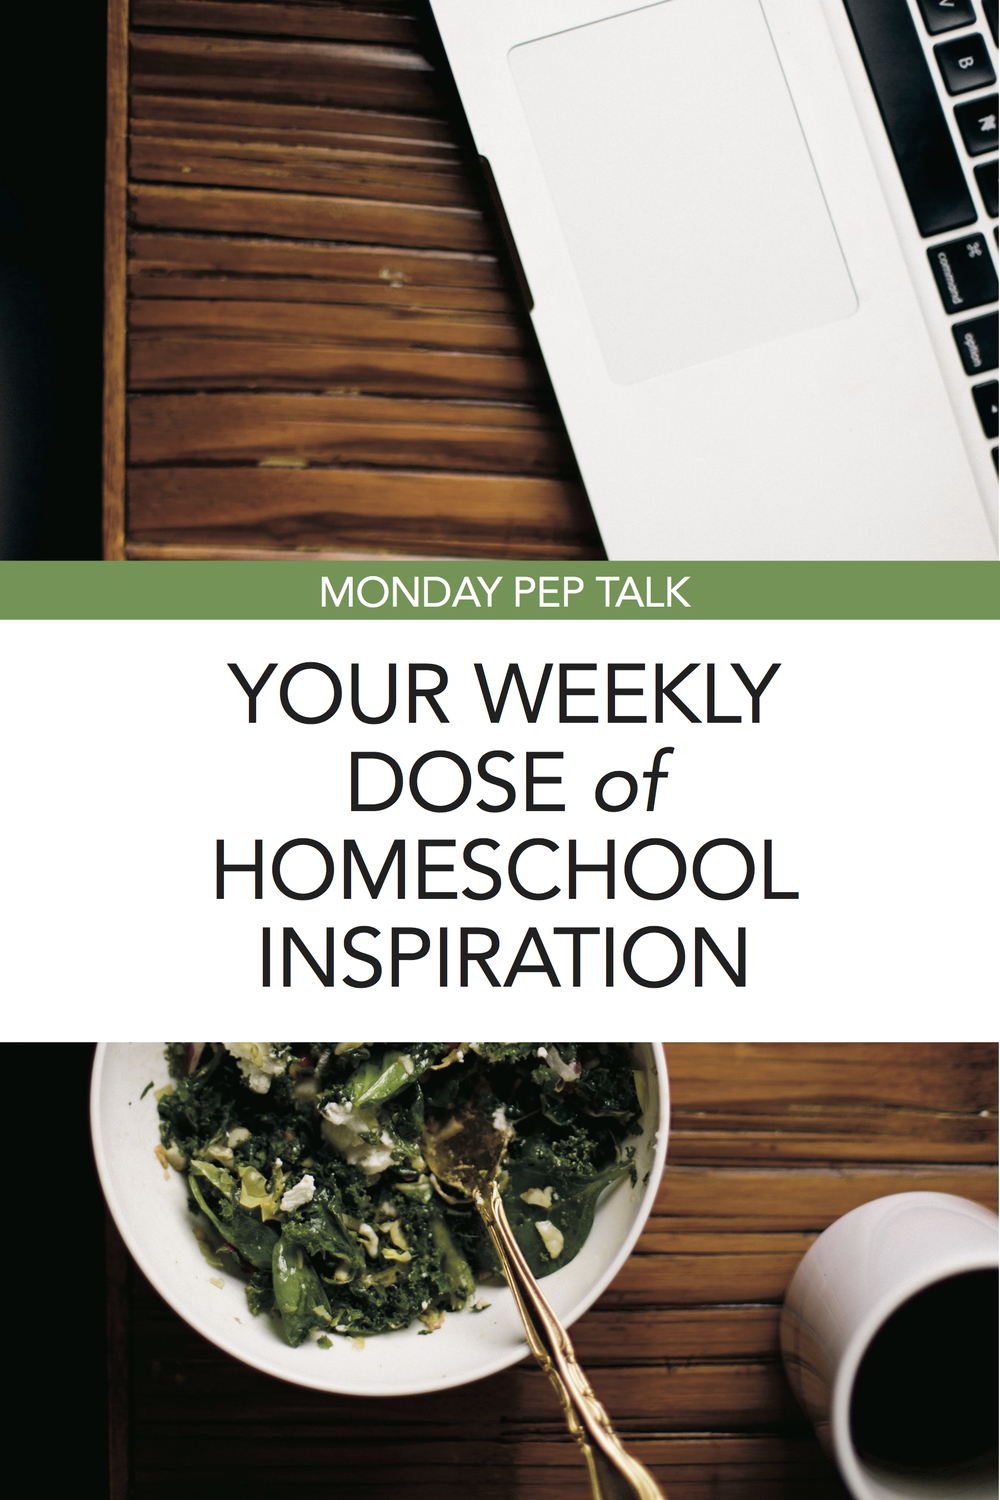 home|school|life magazine's Monday Pep Talk has lots of fun ideas for planning your homeschool week. photo by death to stock photos